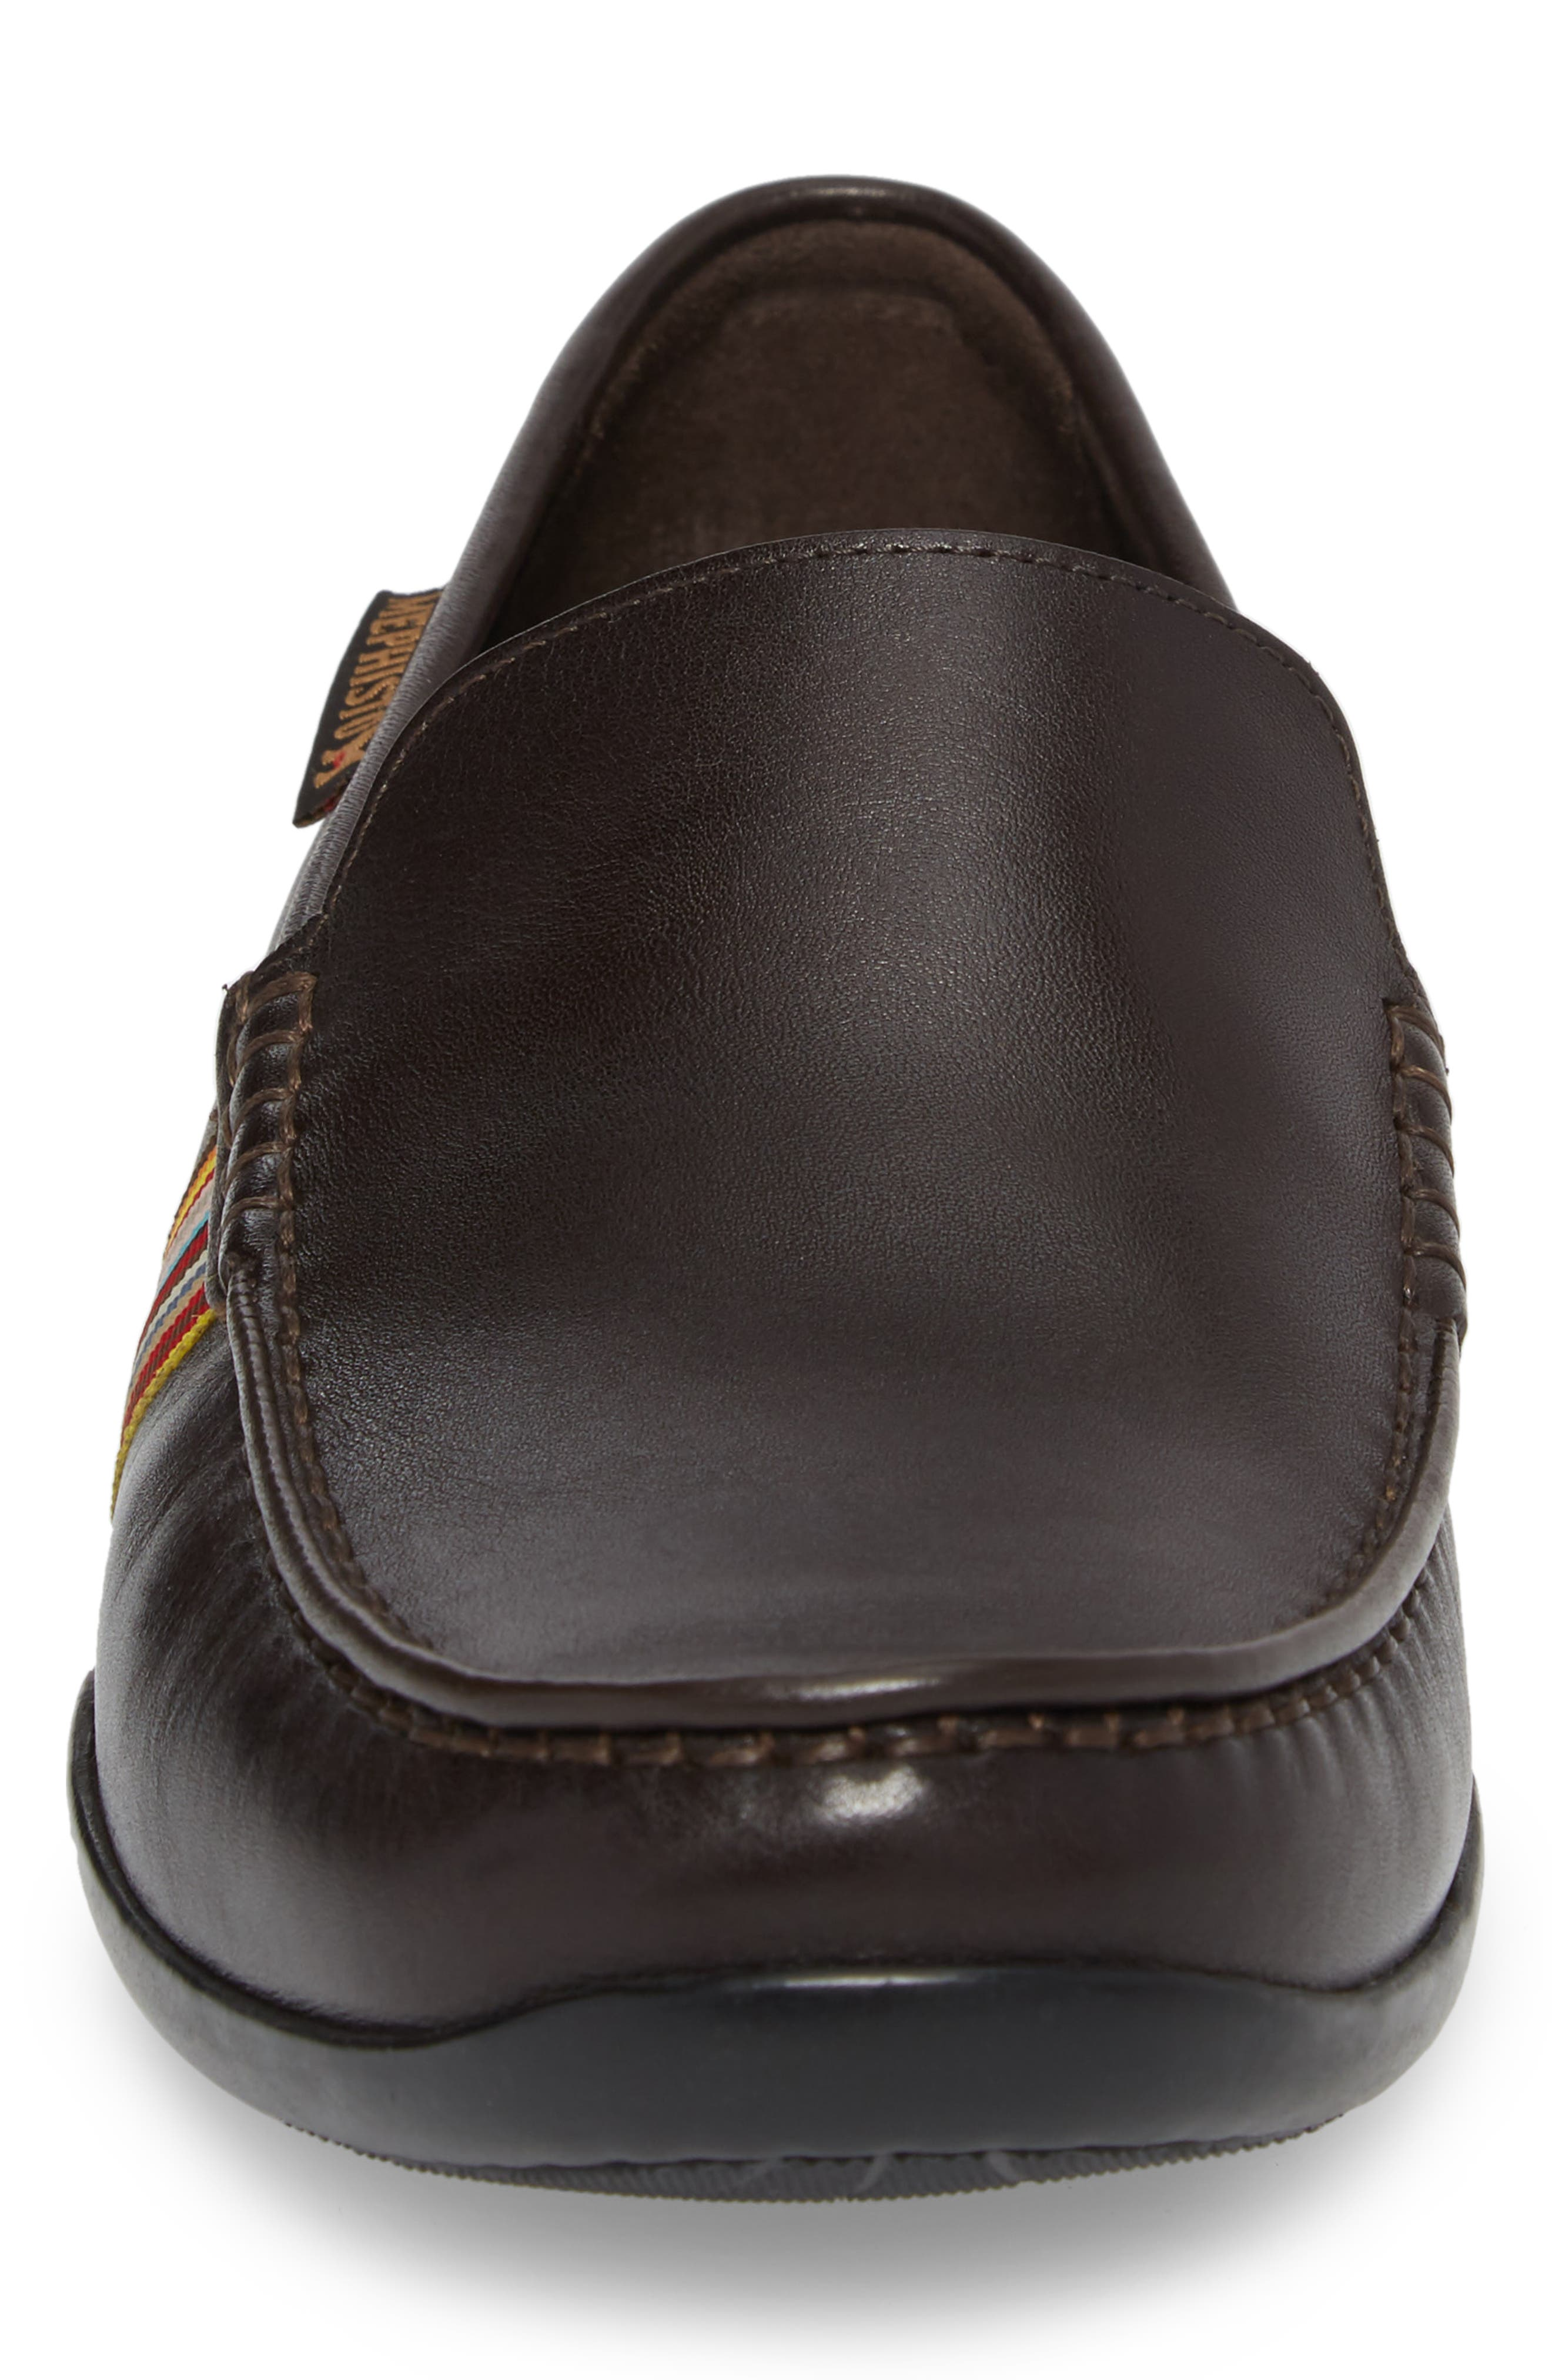 Idris Banded Loafer,                             Alternate thumbnail 4, color,                             Dark Brown Leather